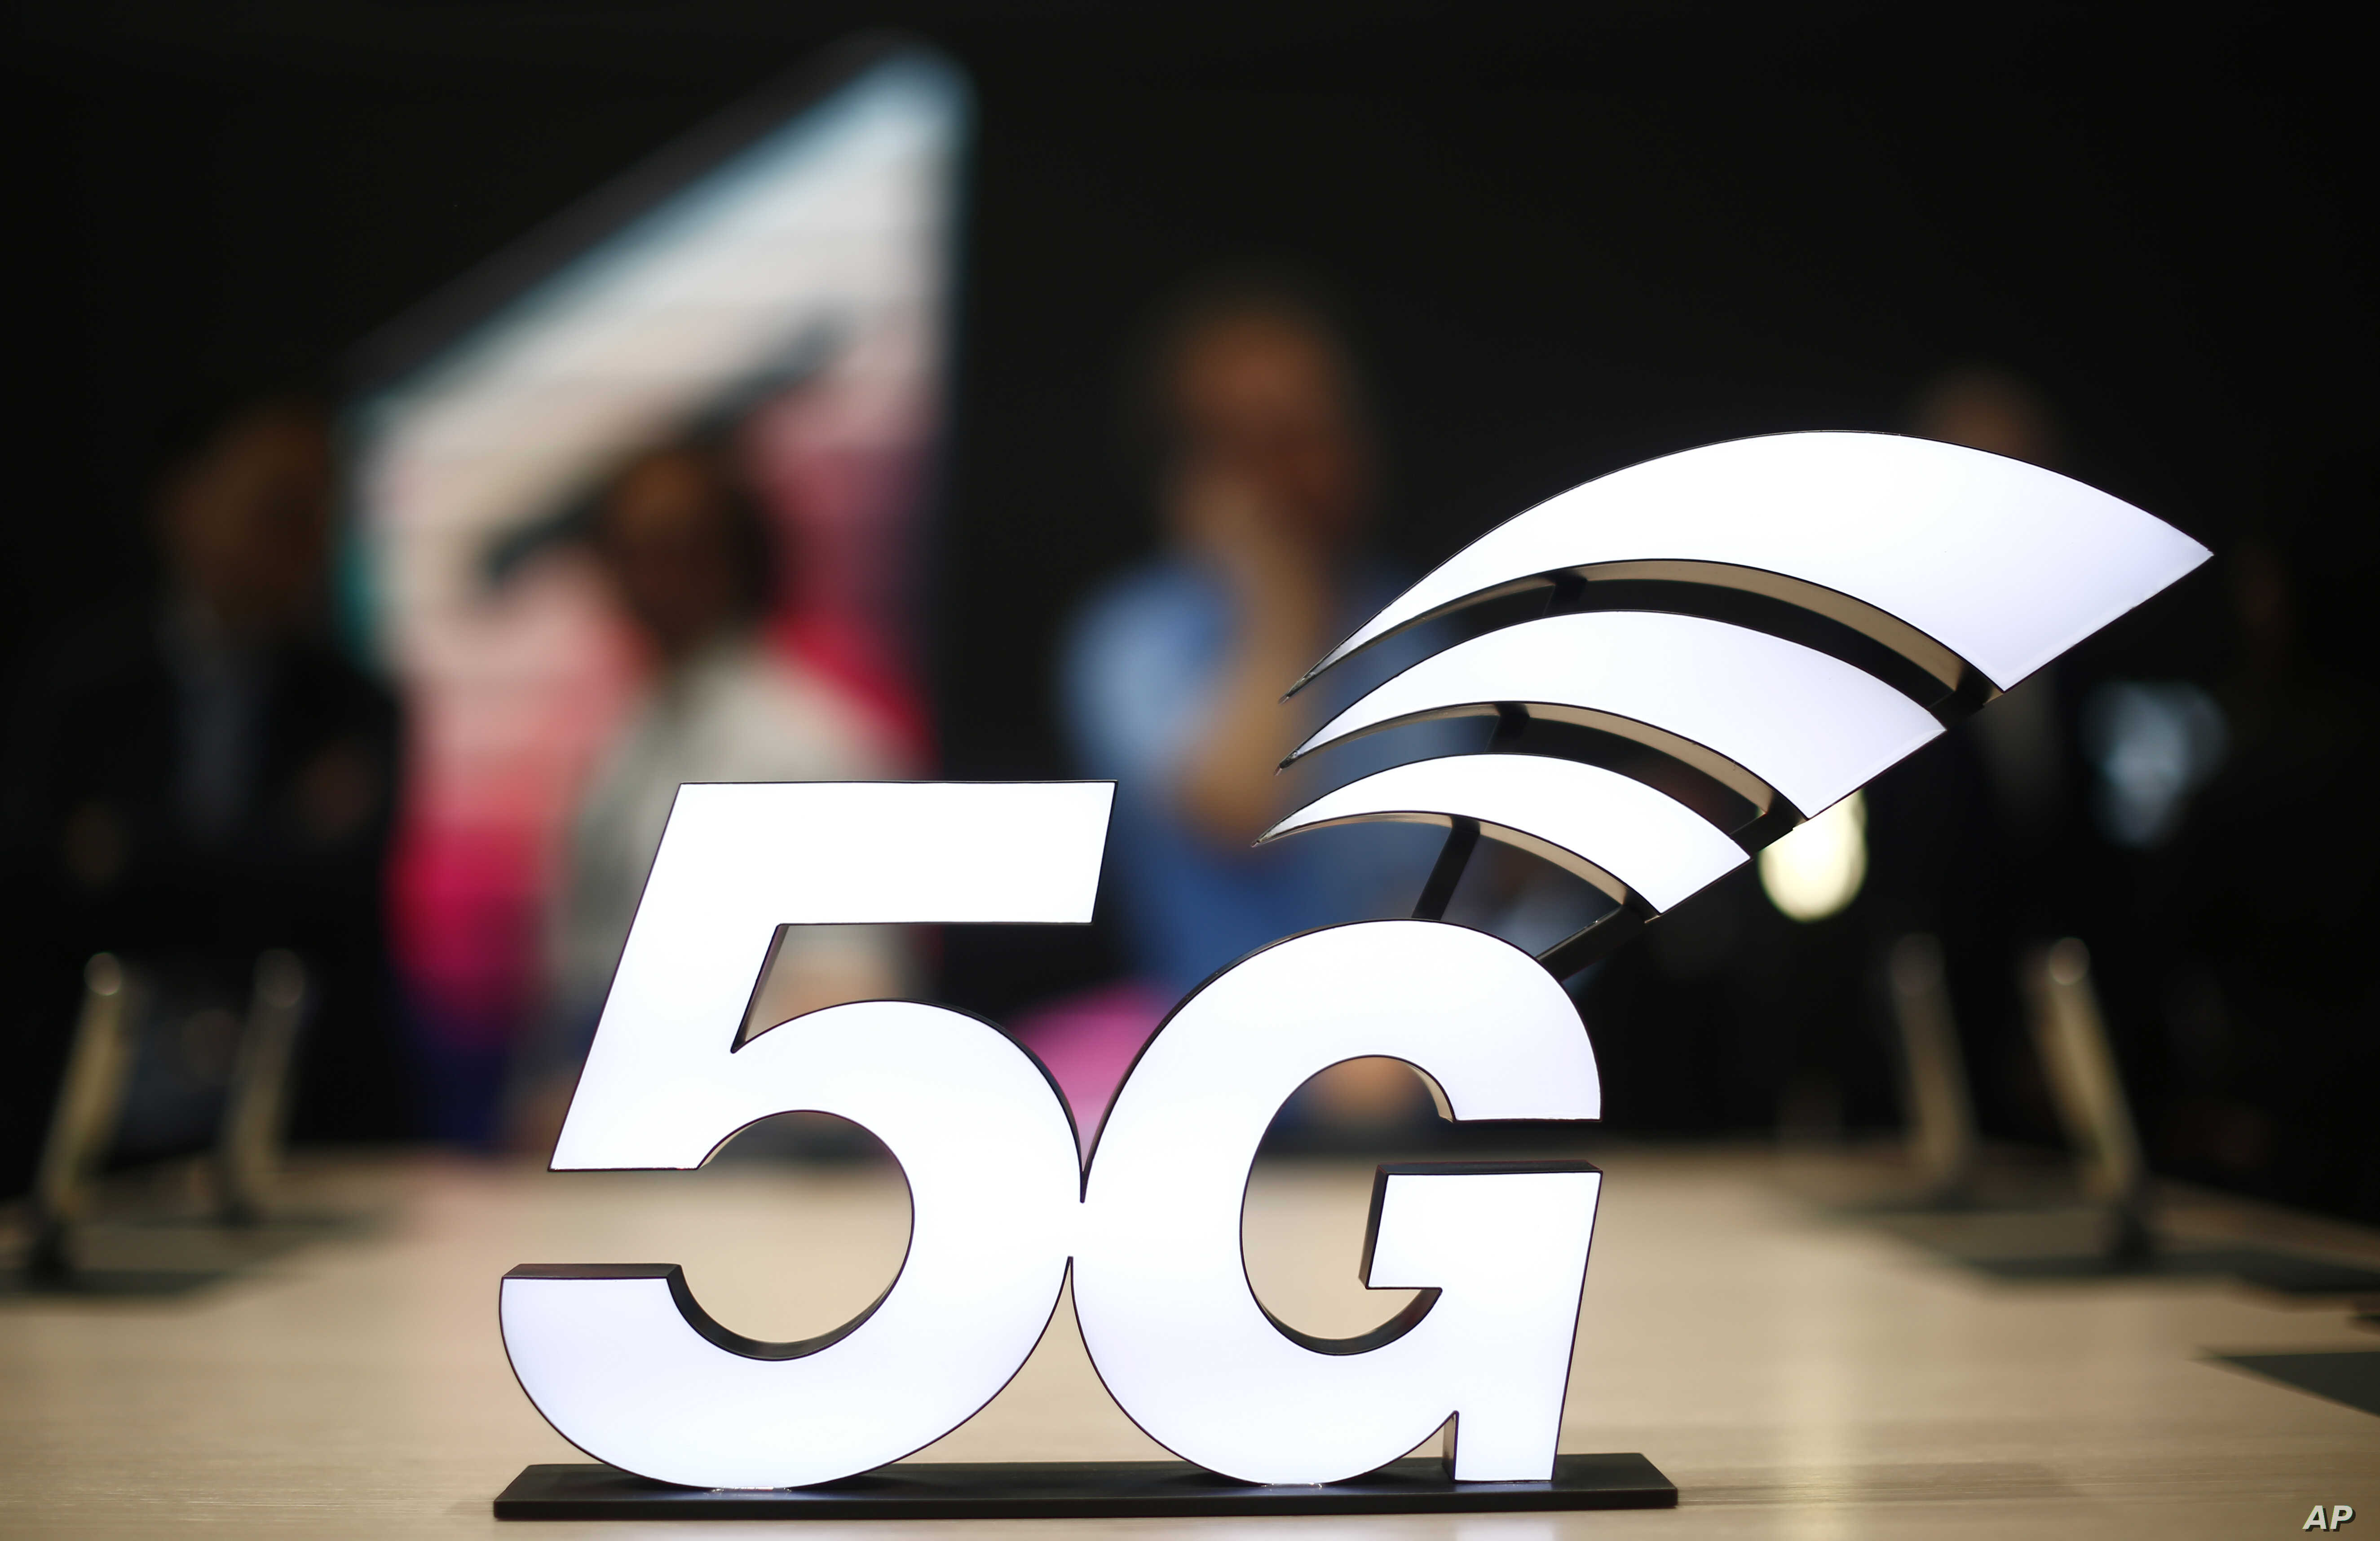 A banner of the 5G network is displayed during the Mobile World Congress wireless show, in Barcelona, Spain, Feb. 25, 2019.